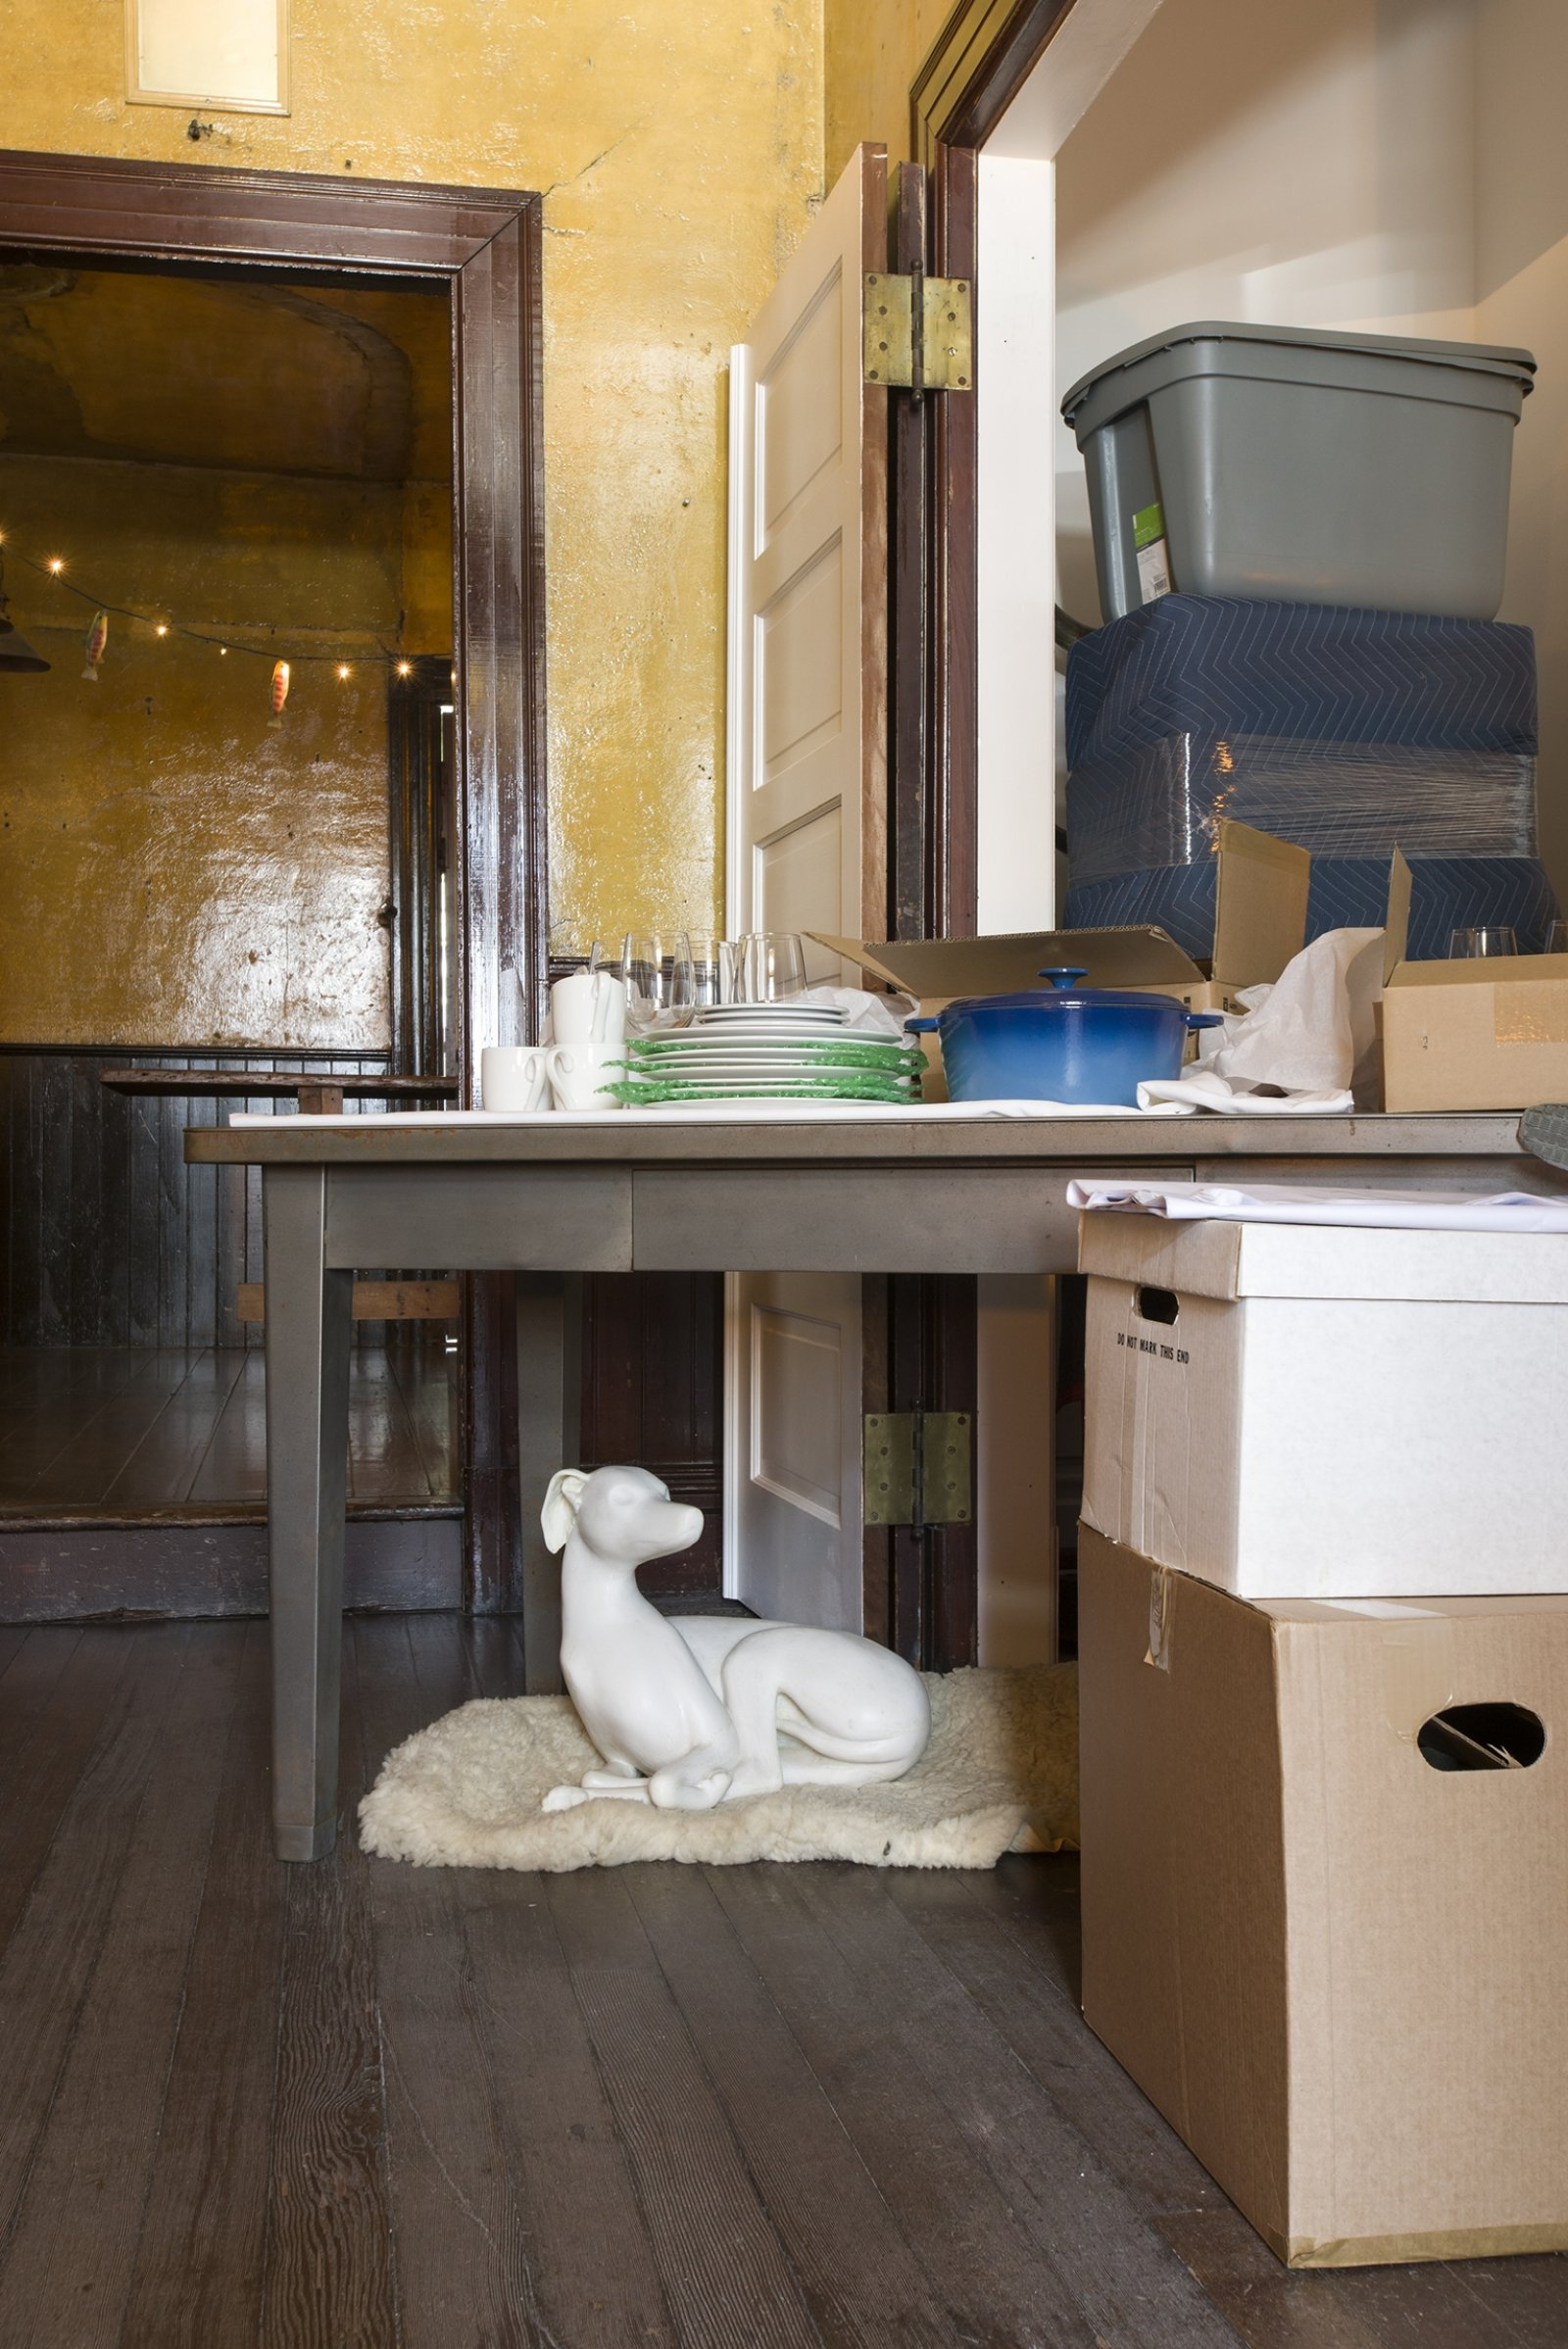 Liz Magor, One Bedroom Apartment, 1996–2019, polyester resin, contents of the David Ireland House, dimensions variable. Installation view, TIMESHARE, The David Ireland House, 500 Capp Street Foundation, San Francisco, USA, 2019 by Liz Magor